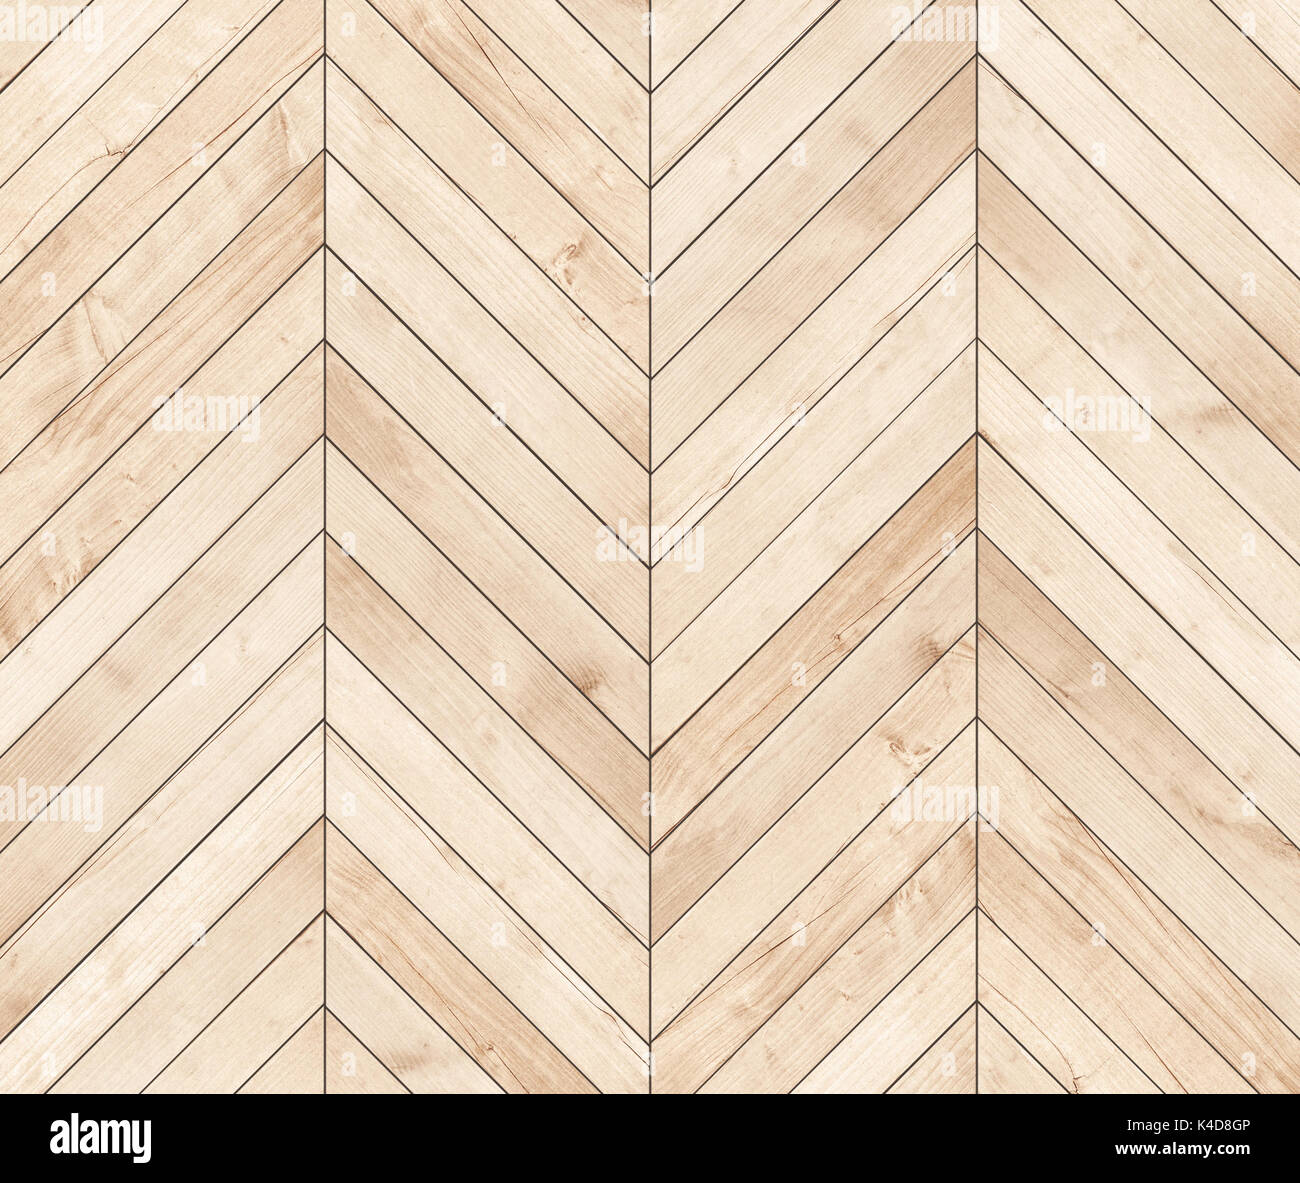 Natural Brown Wooden Parquet Herringbone Wood Texture Stock Photo